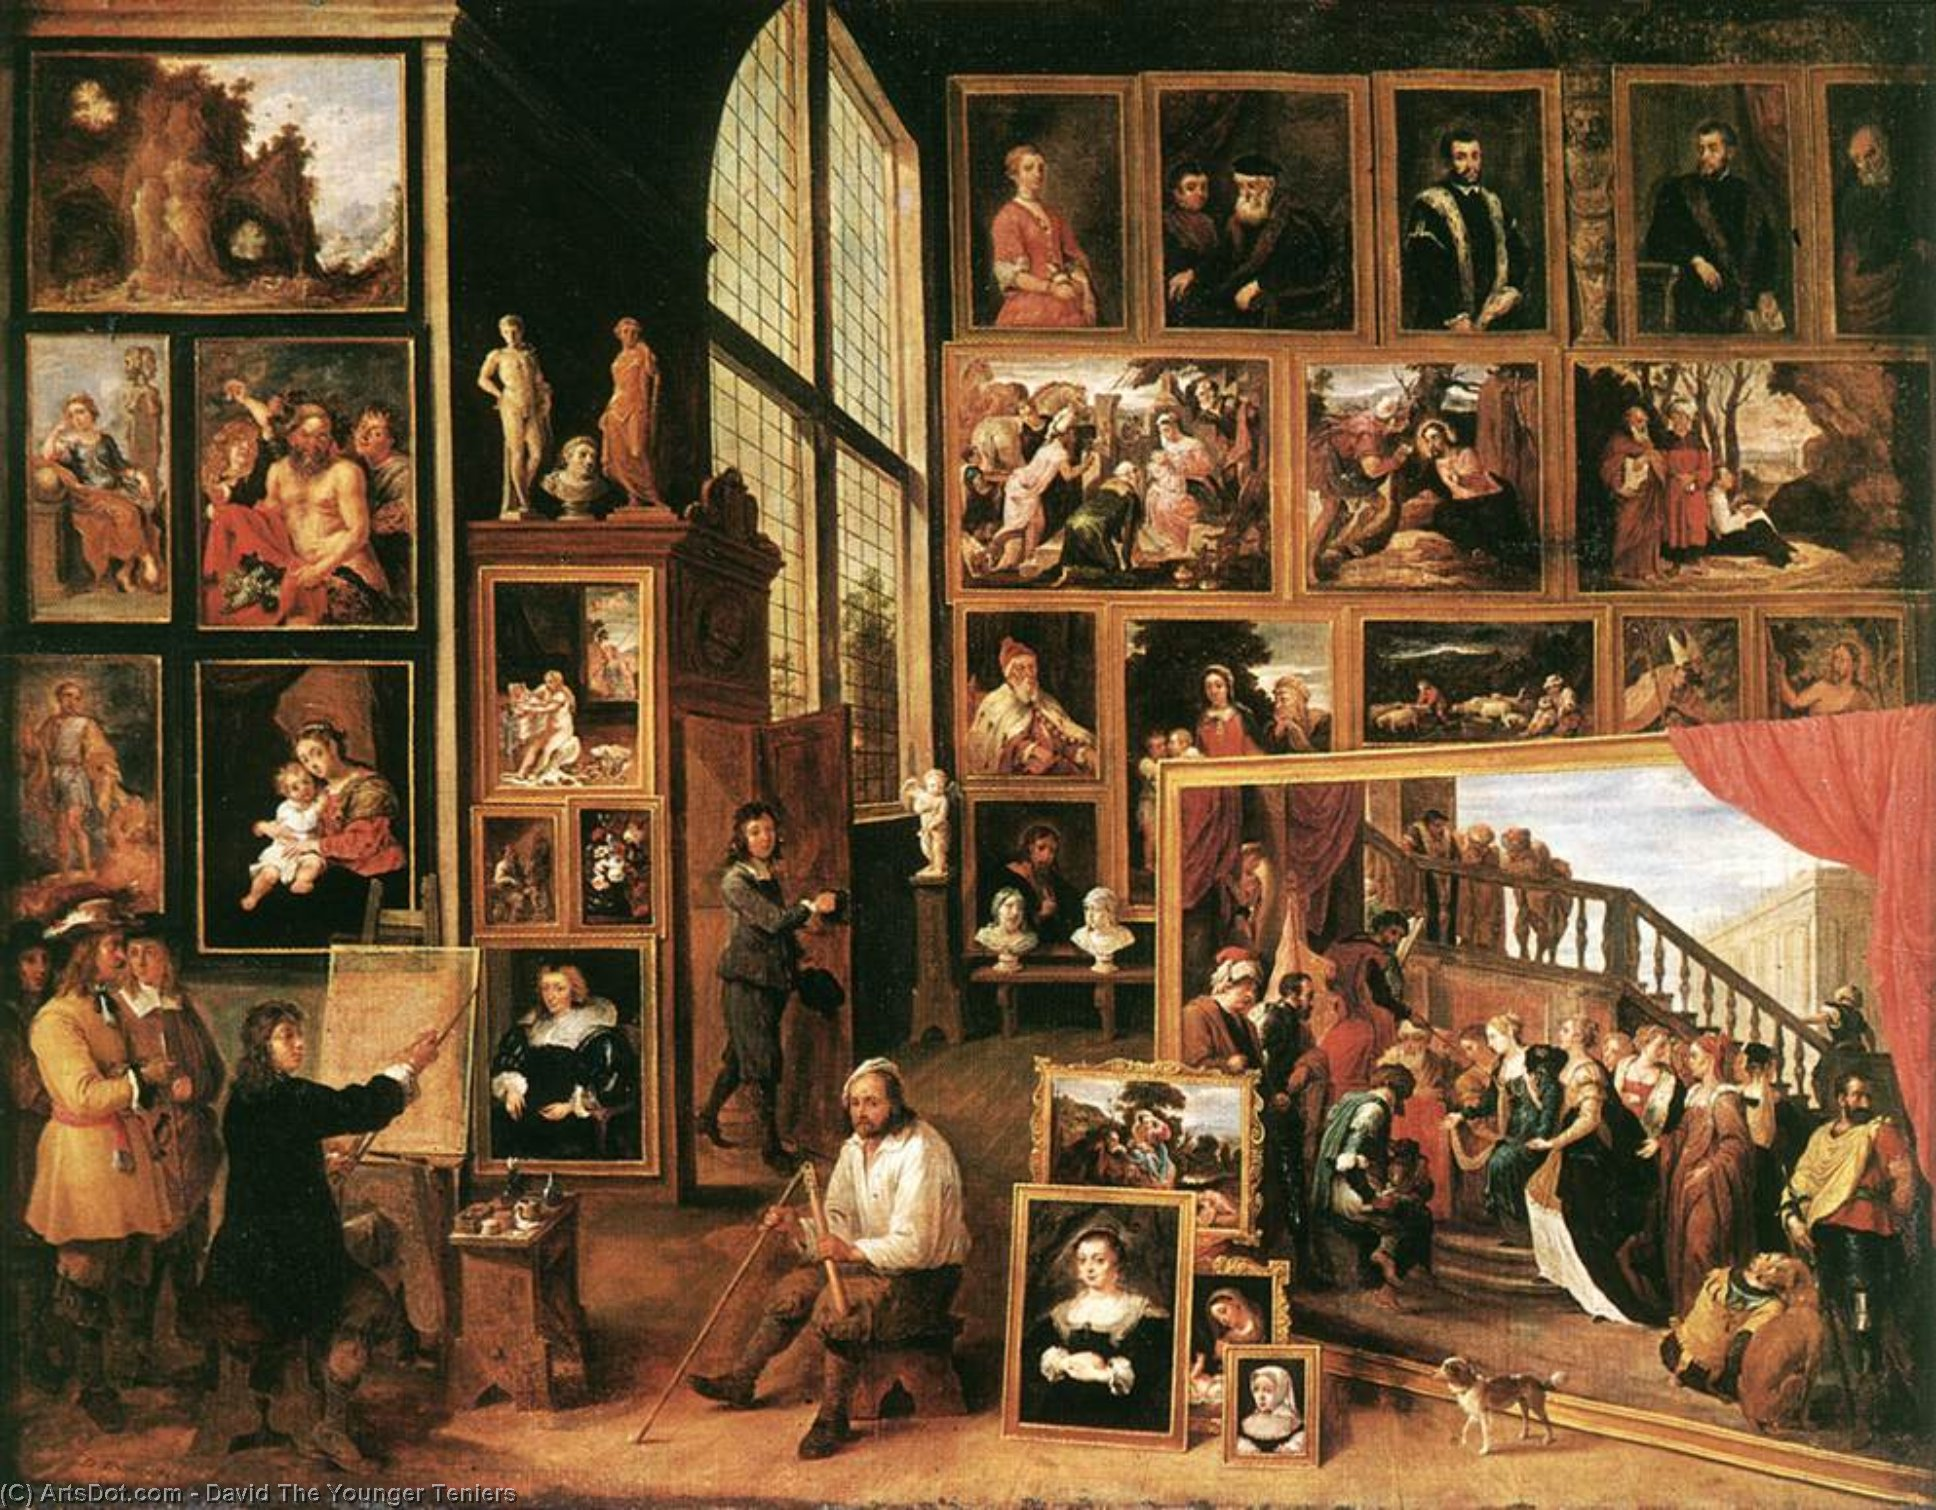 Wikioo.org - The Encyclopedia of Fine Arts - Painting, Artwork by David The Younger Teniers - The Gallery of Archduke Leopold in Brussels